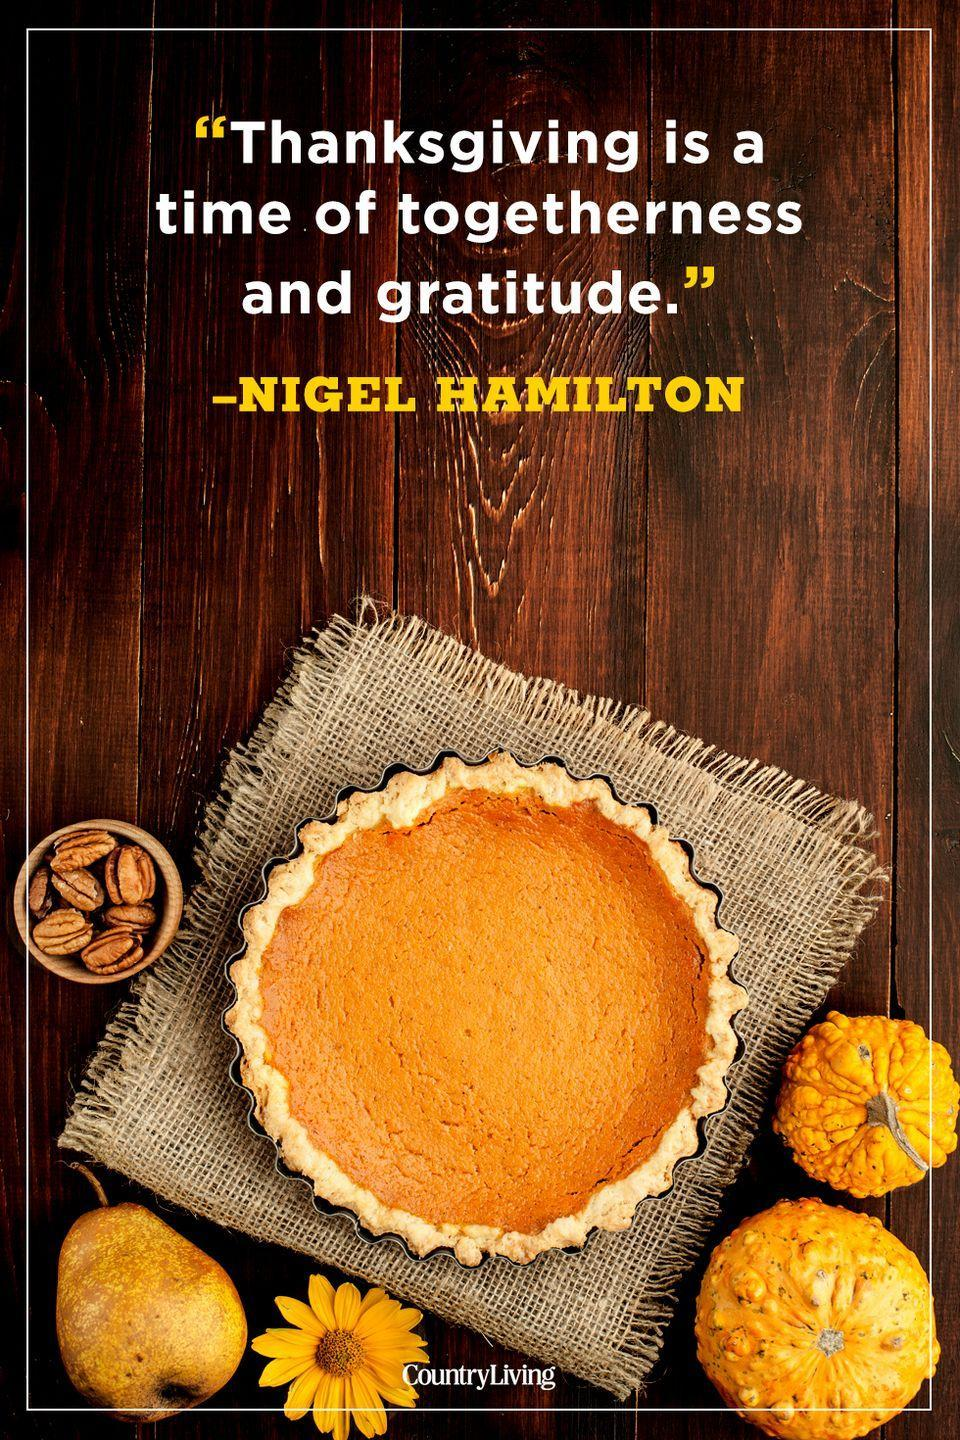 """<p>""""Thanksgiving is a time of togetherness and gratitude.""""</p><p><strong>RELATED: </strong><a href=""""https://www.countryliving.com/food-drinks/g974/pumpkin-pie-recipes/"""" rel=""""nofollow noopener"""" target=""""_blank"""" data-ylk=""""slk:Sinfully Sweet Thanksgiving Pumpkin Pie Recipes"""" class=""""link rapid-noclick-resp"""">Sinfully Sweet Thanksgiving Pumpkin Pie Recipes</a><br></p>"""